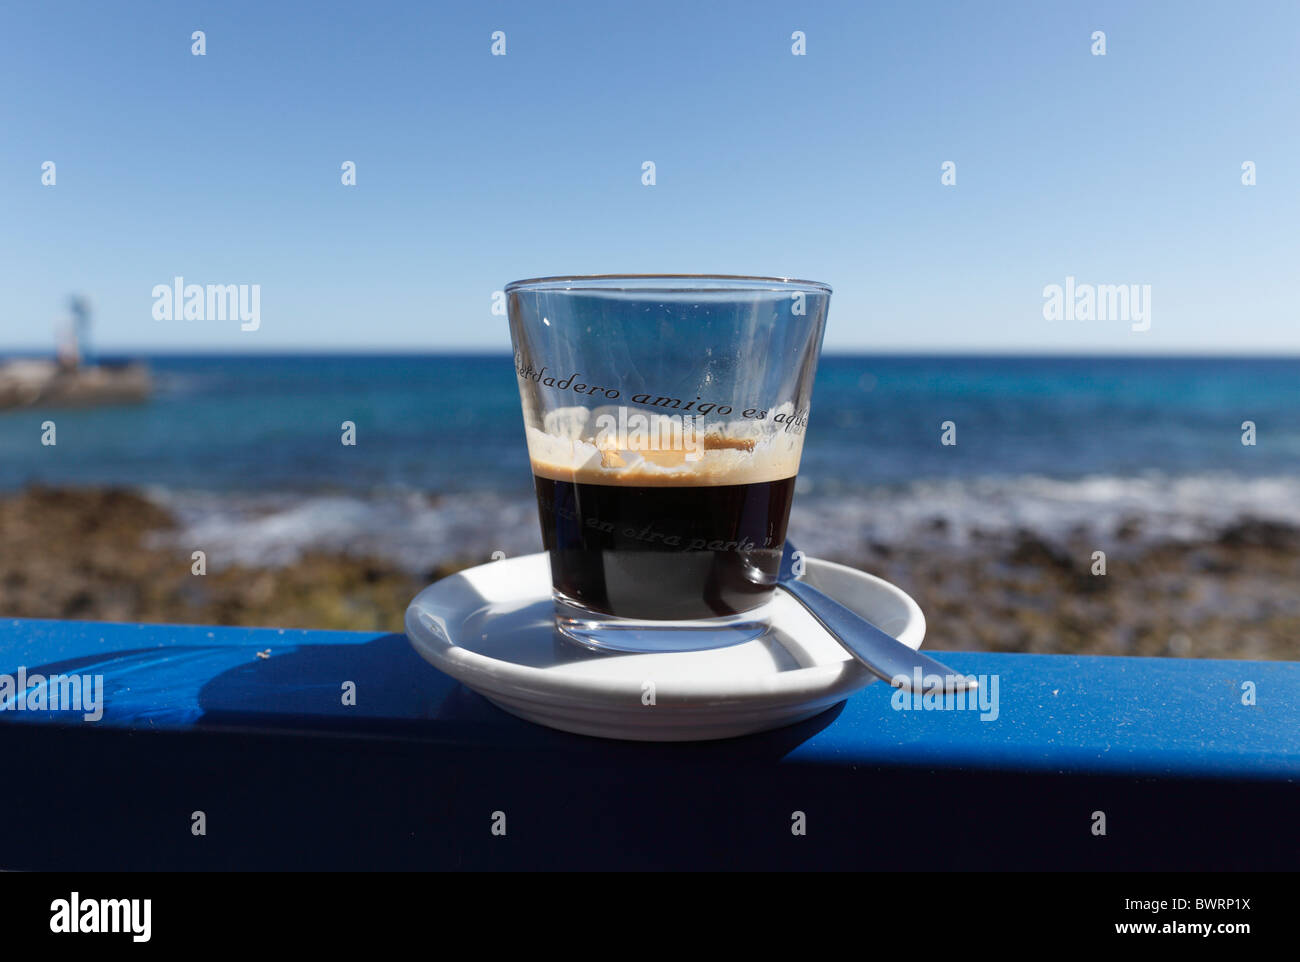 Glass of black coffee, cafe solo, espresso, Arrieta, Lanzarote, Canary Islands, Spain, Europe - Stock Image